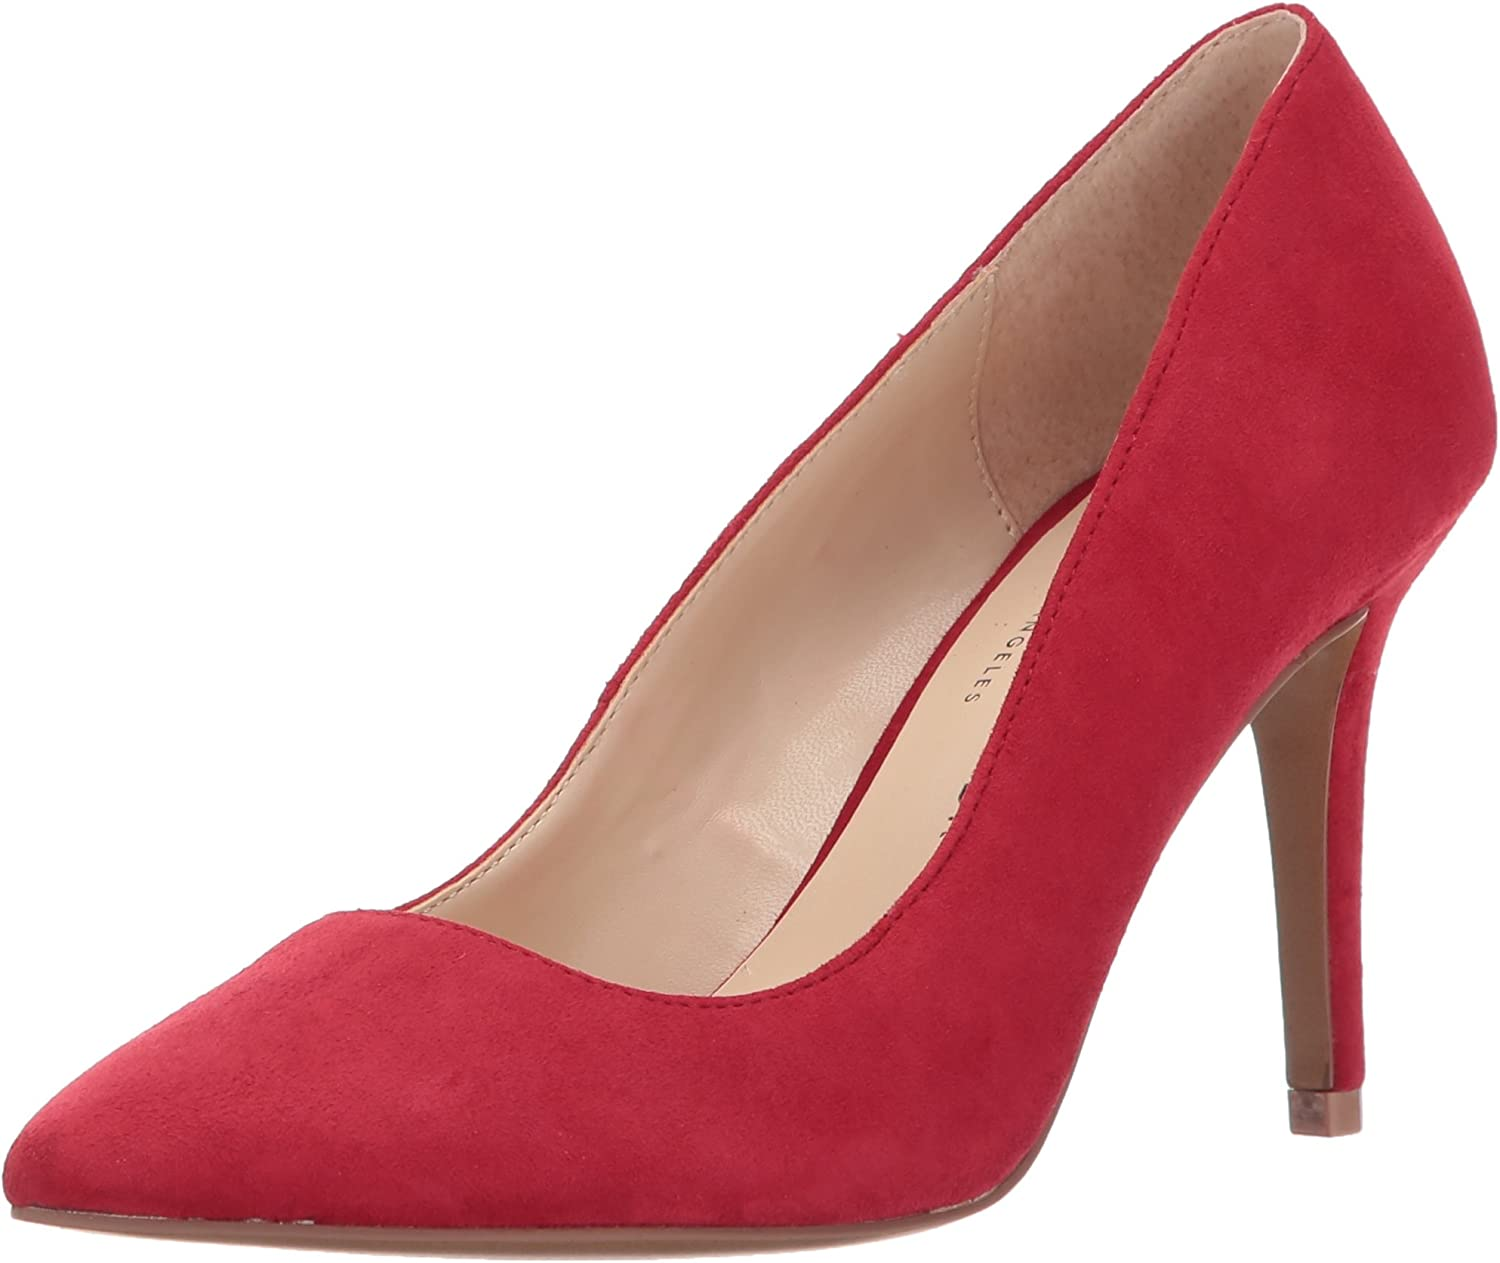 Chinese Laundry Women's Ruthy Dress Pump